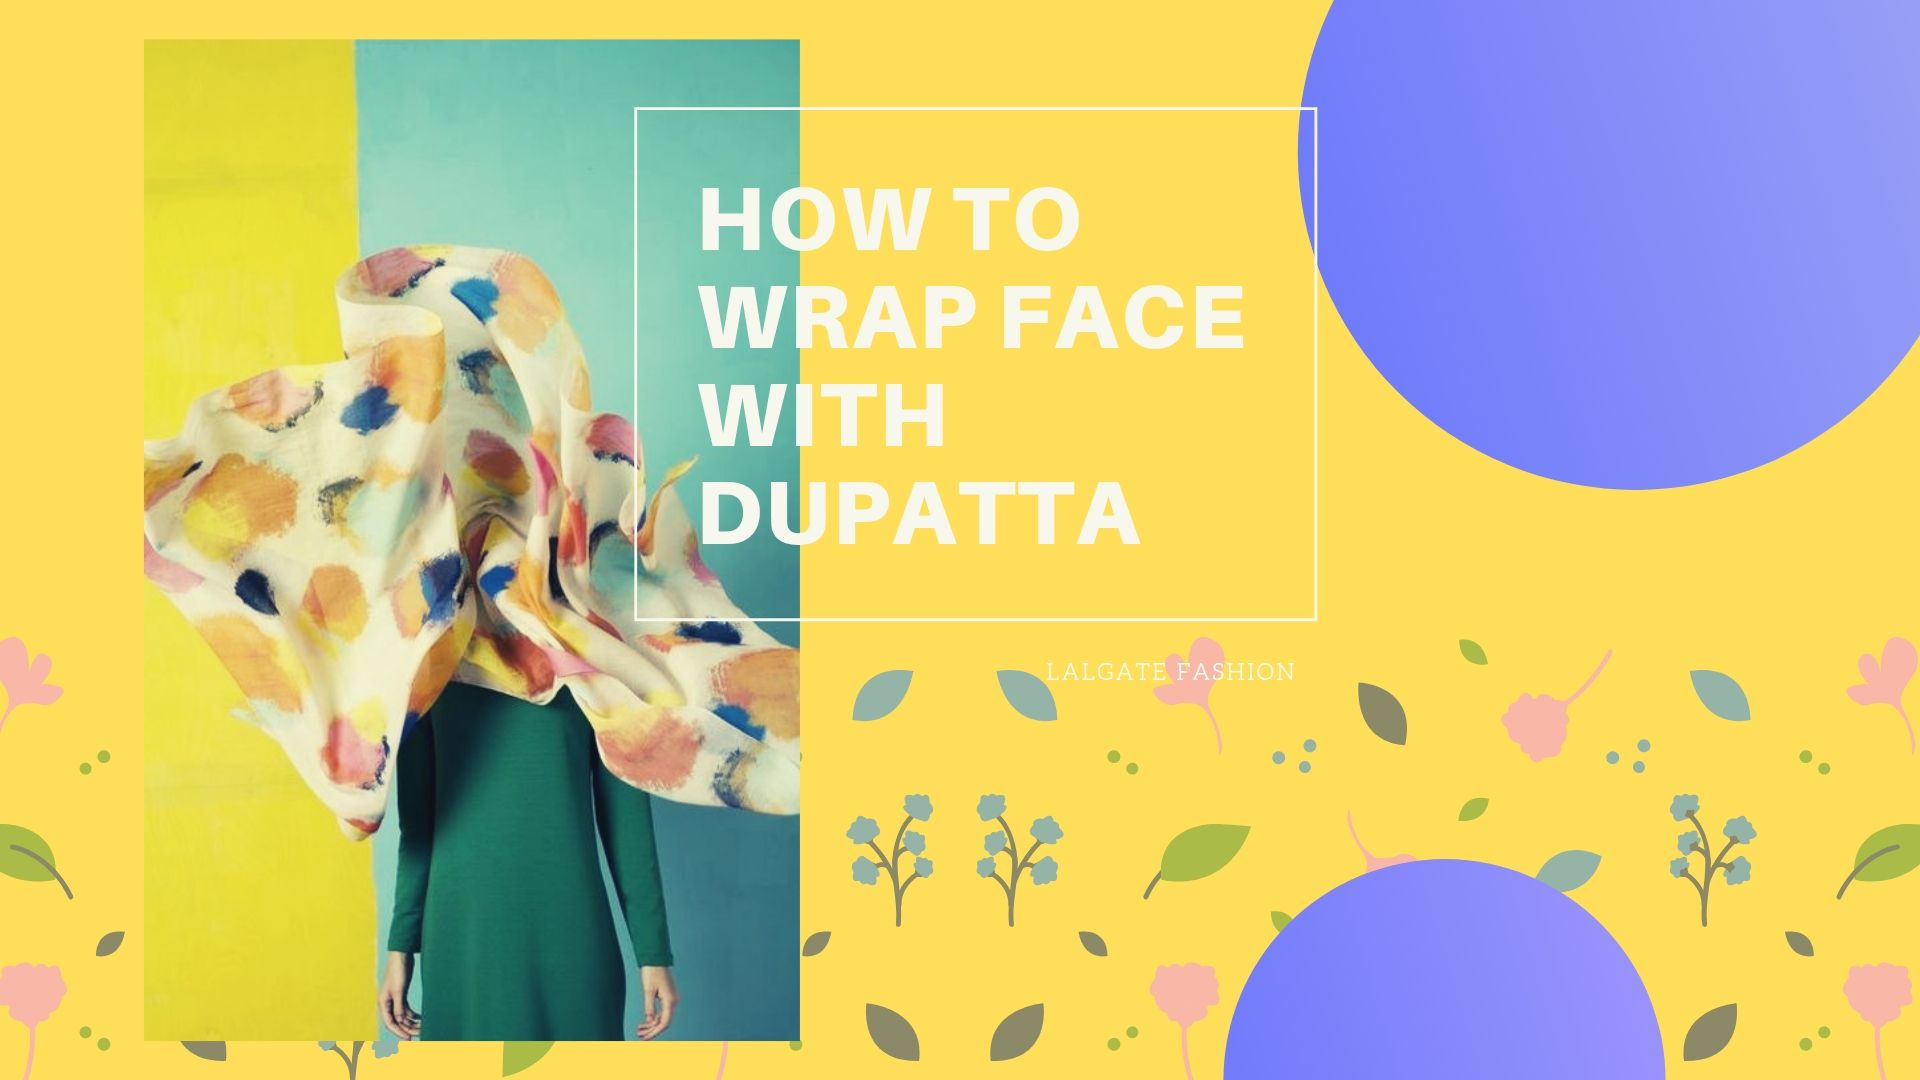 How to Wrap Face with Dupatta